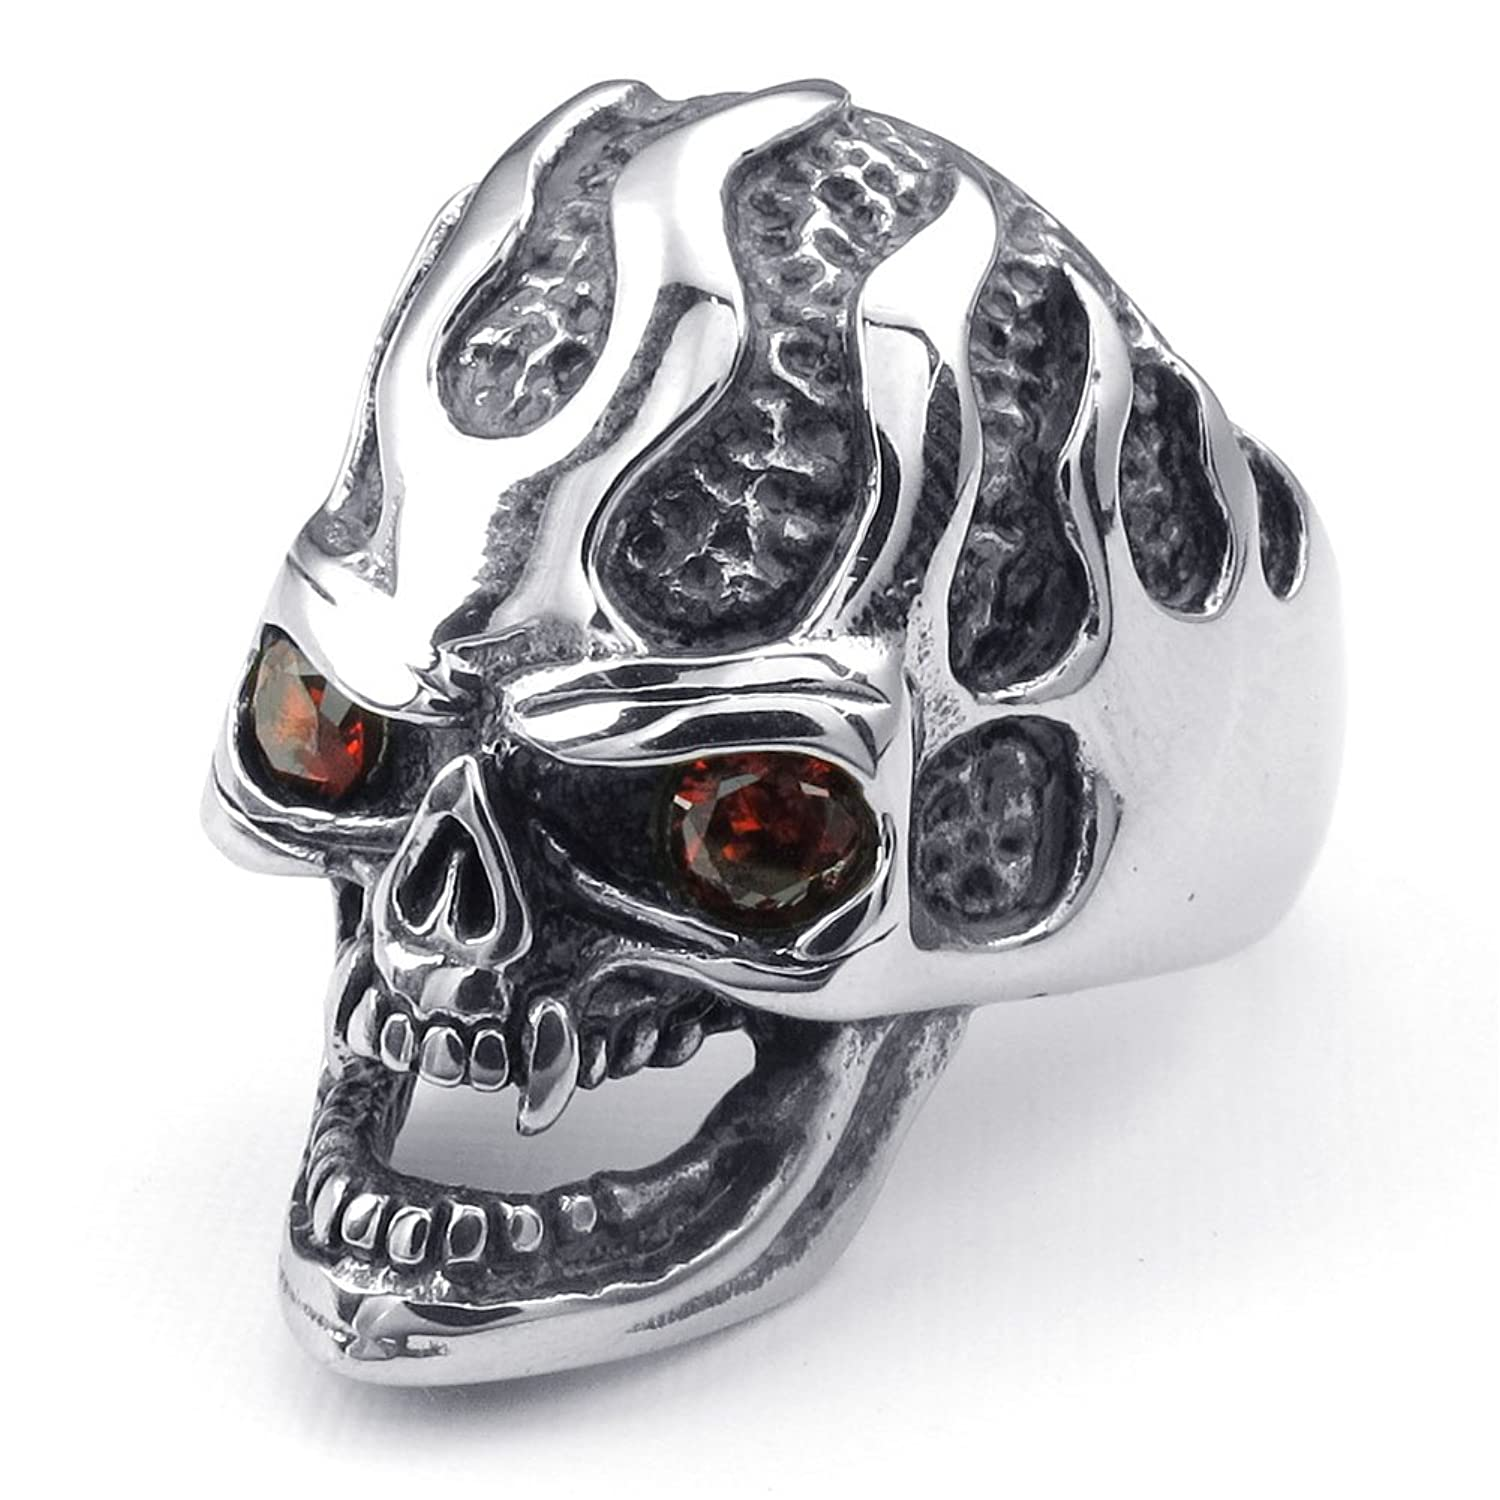 TEMEGO Jewelry Mens Cubic Zirconia Stainless Steel Ring, Vintage Gothic Skull Band, Red Black Silver